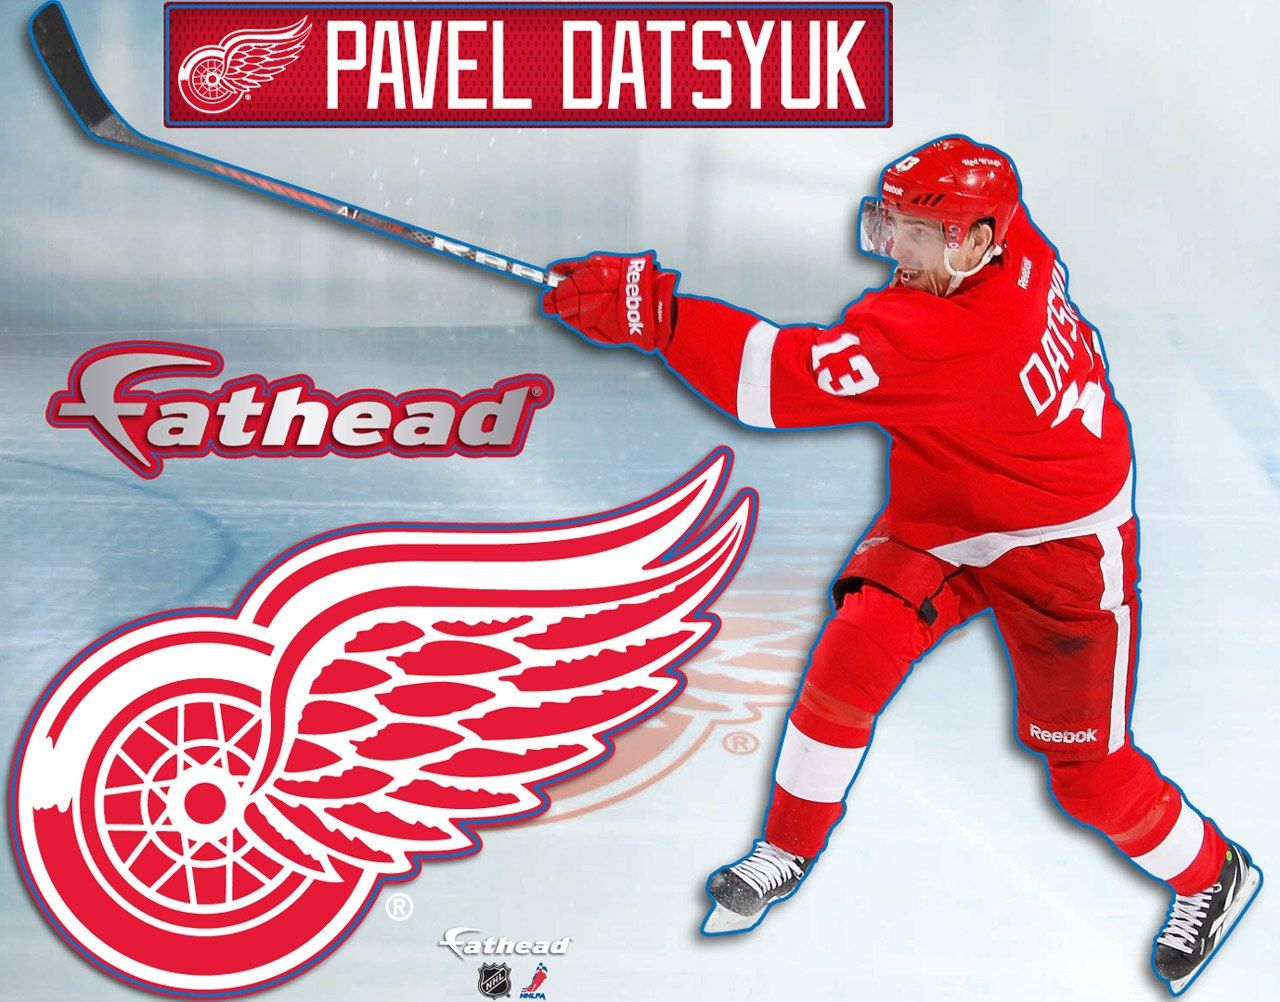 Woohoo! Tonight's Fathead giveaway! Detroit red wings